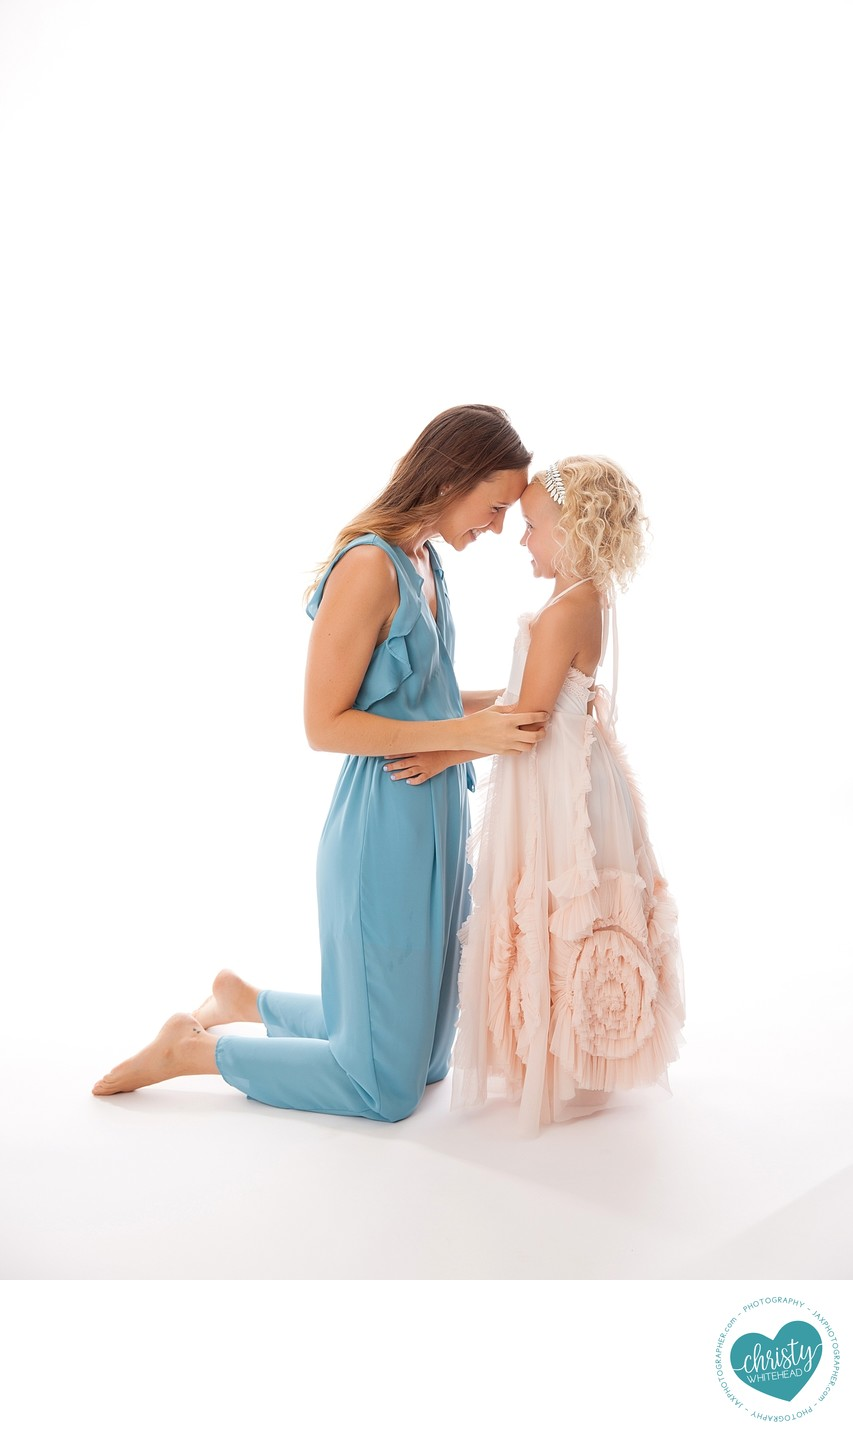 Mom And Daughter In Studio for Photo Shoot